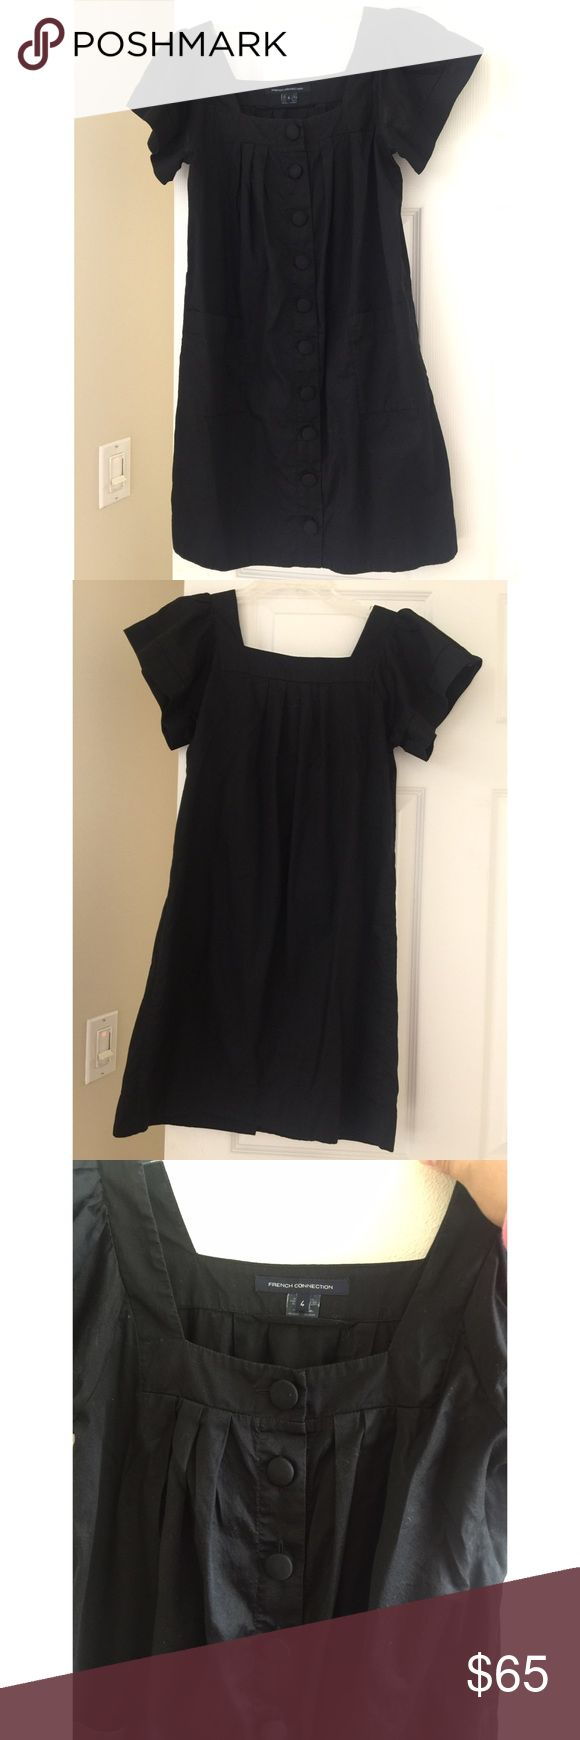 Black French Connection Mini Dress Gorgeous casual mini dress from French Connection In excellent preworn condition with no rips, no stains, no tears. The style is a button down dress that fits above the knees. Super perfect for fall and pair it with some leggings and knee high boots. Size 4. **No Trades** French Connection Dresses Mini